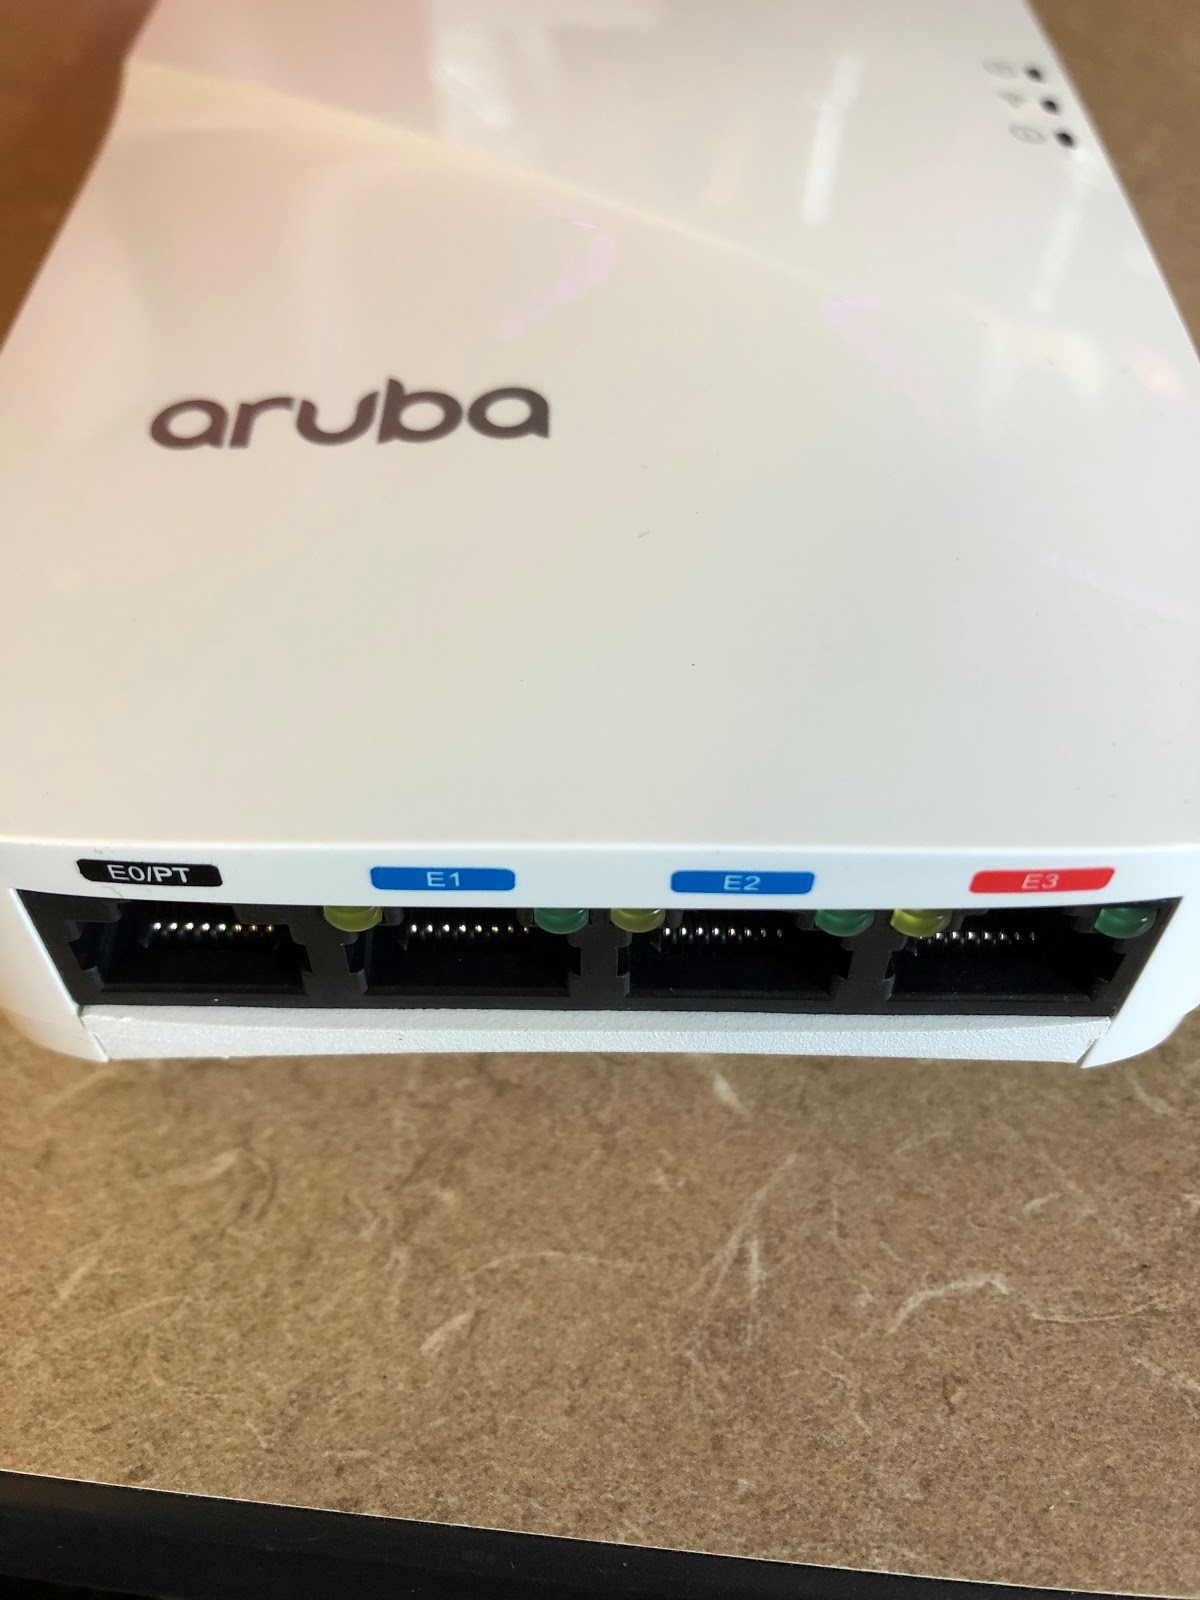 Aruba Wi-Fi access point from University Courtyard Apartments. Ports from left to right are: E0/PT (black), E1, E2 (blue), and E3 (red)